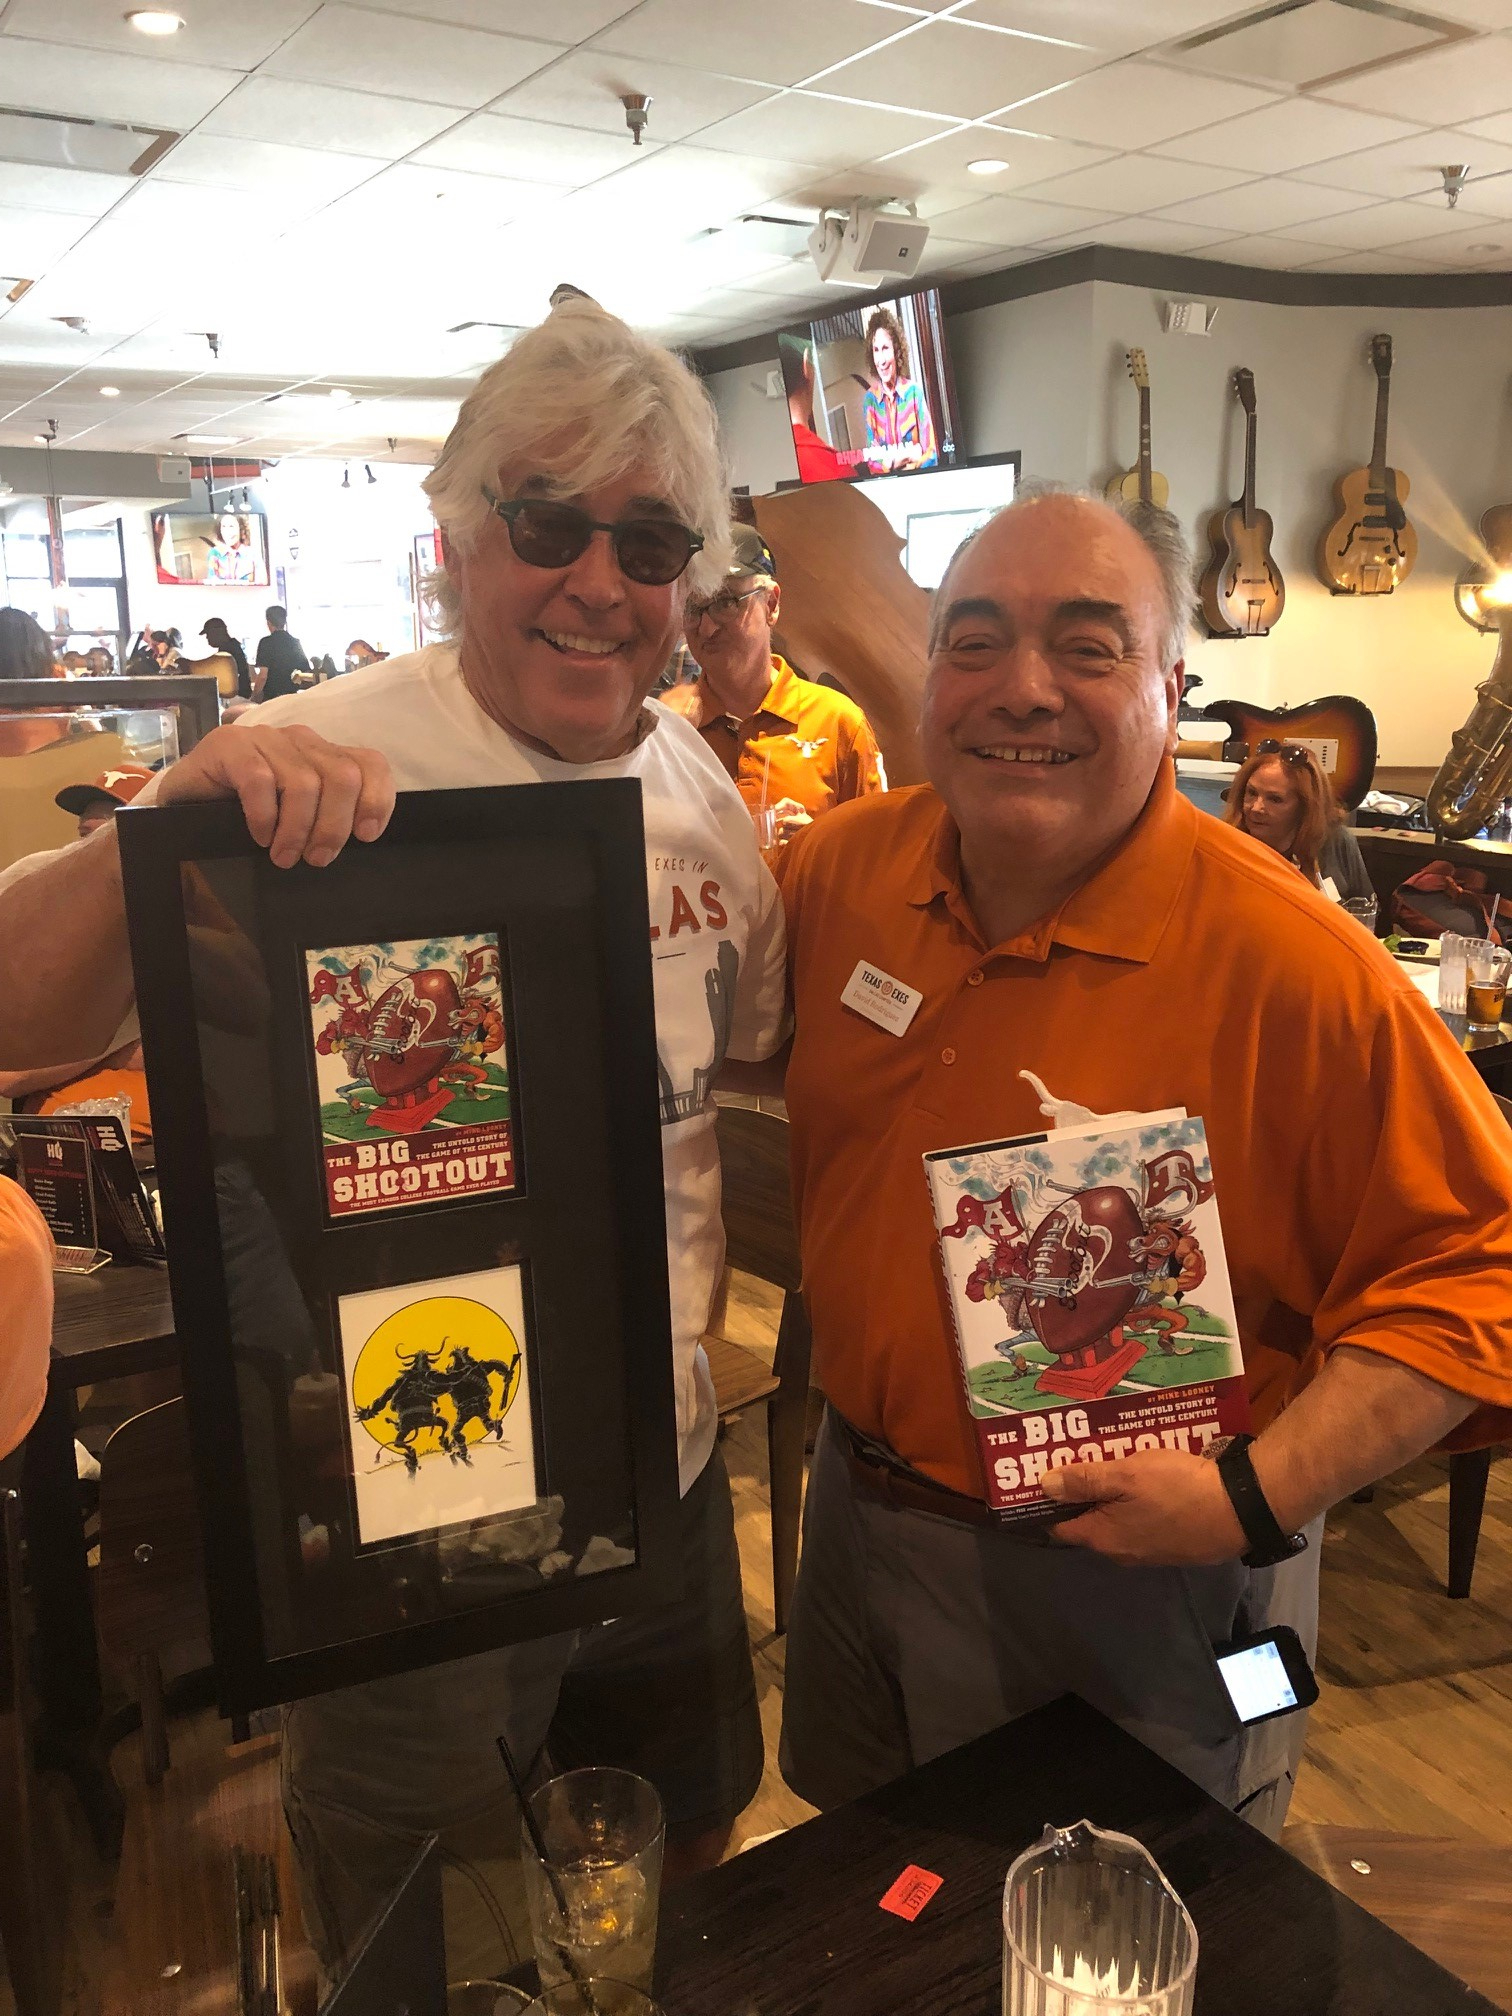 Mike with David Rodriguez, president of the Dallas Chapter of Texas Exes at HQ Prime Barbecue in Dallas